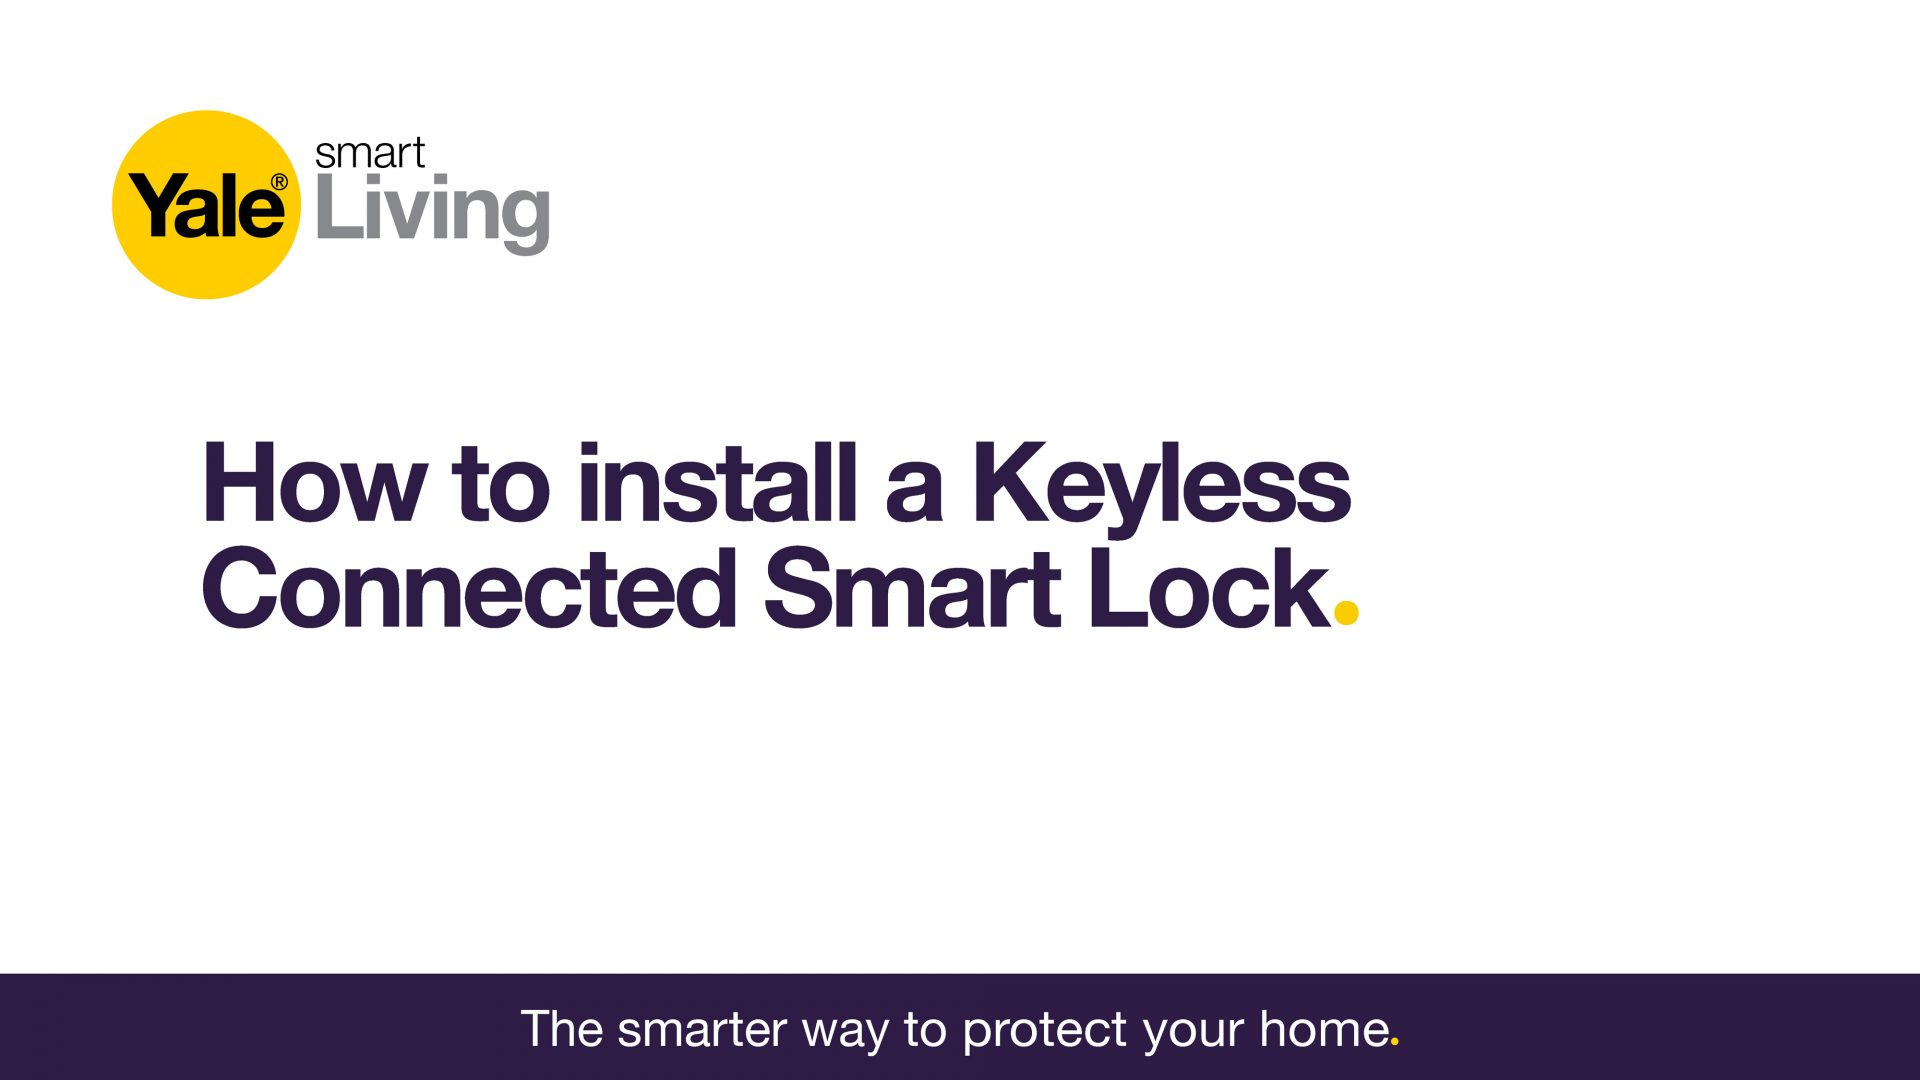 Image showing how to install a Keyless Connected Smart Door Lock.